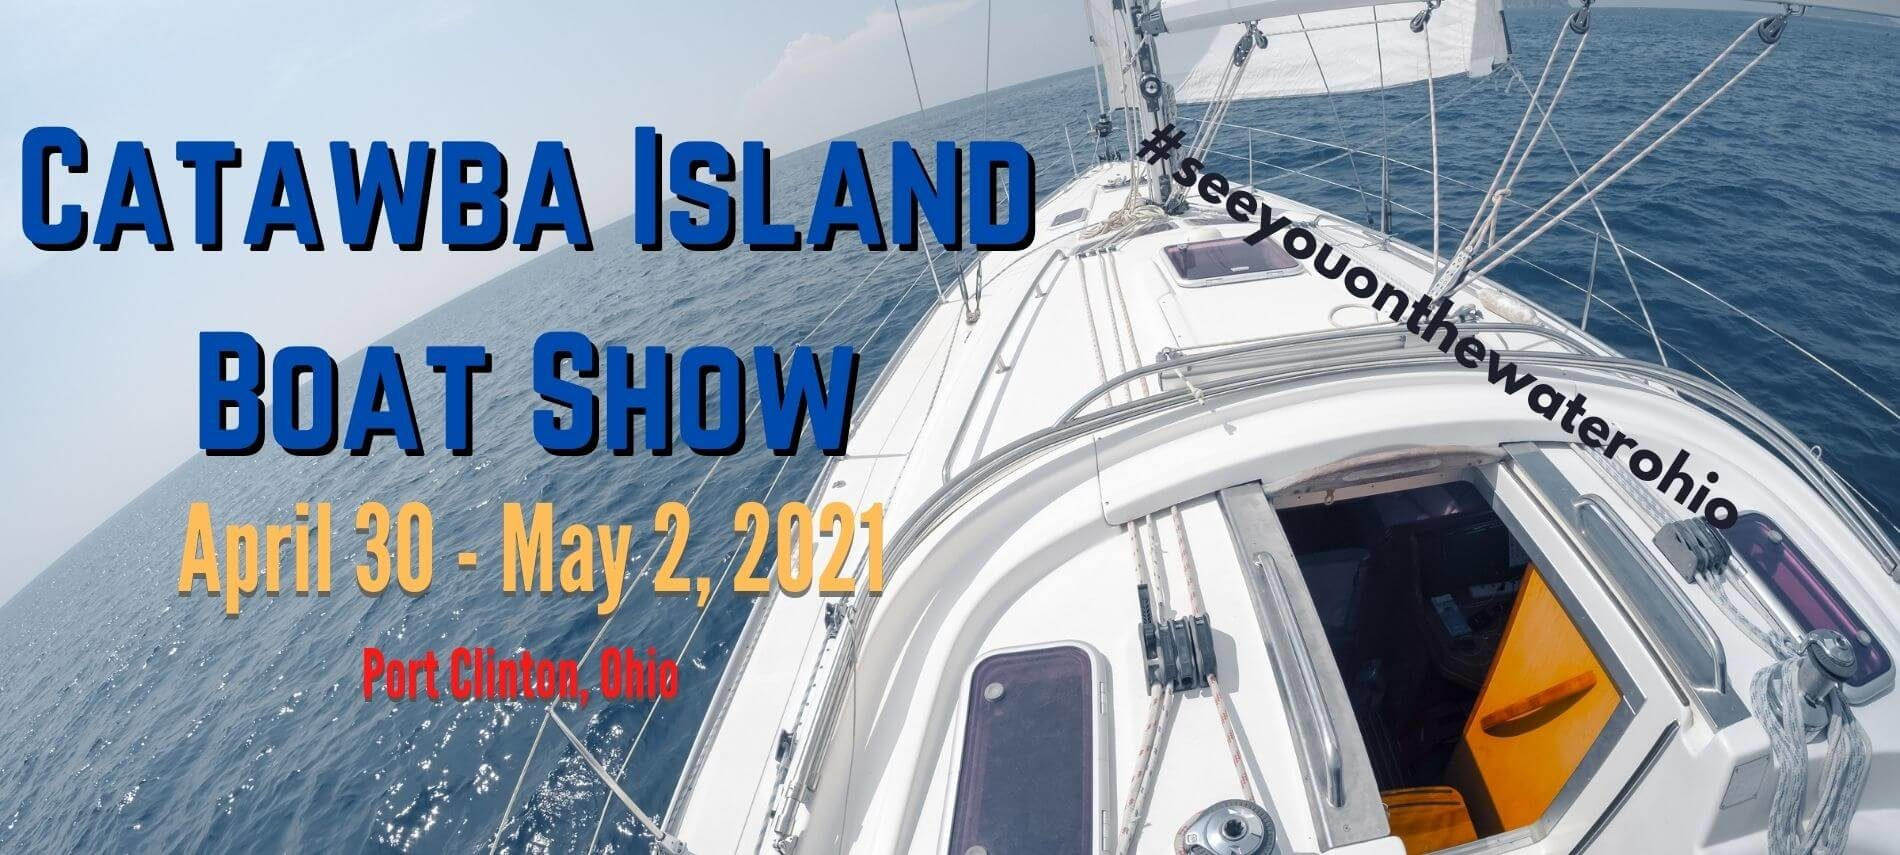 The front of a powerboat cuts through the water on a sunny day, with text regarding the Catawba Island Boat Show, 2021